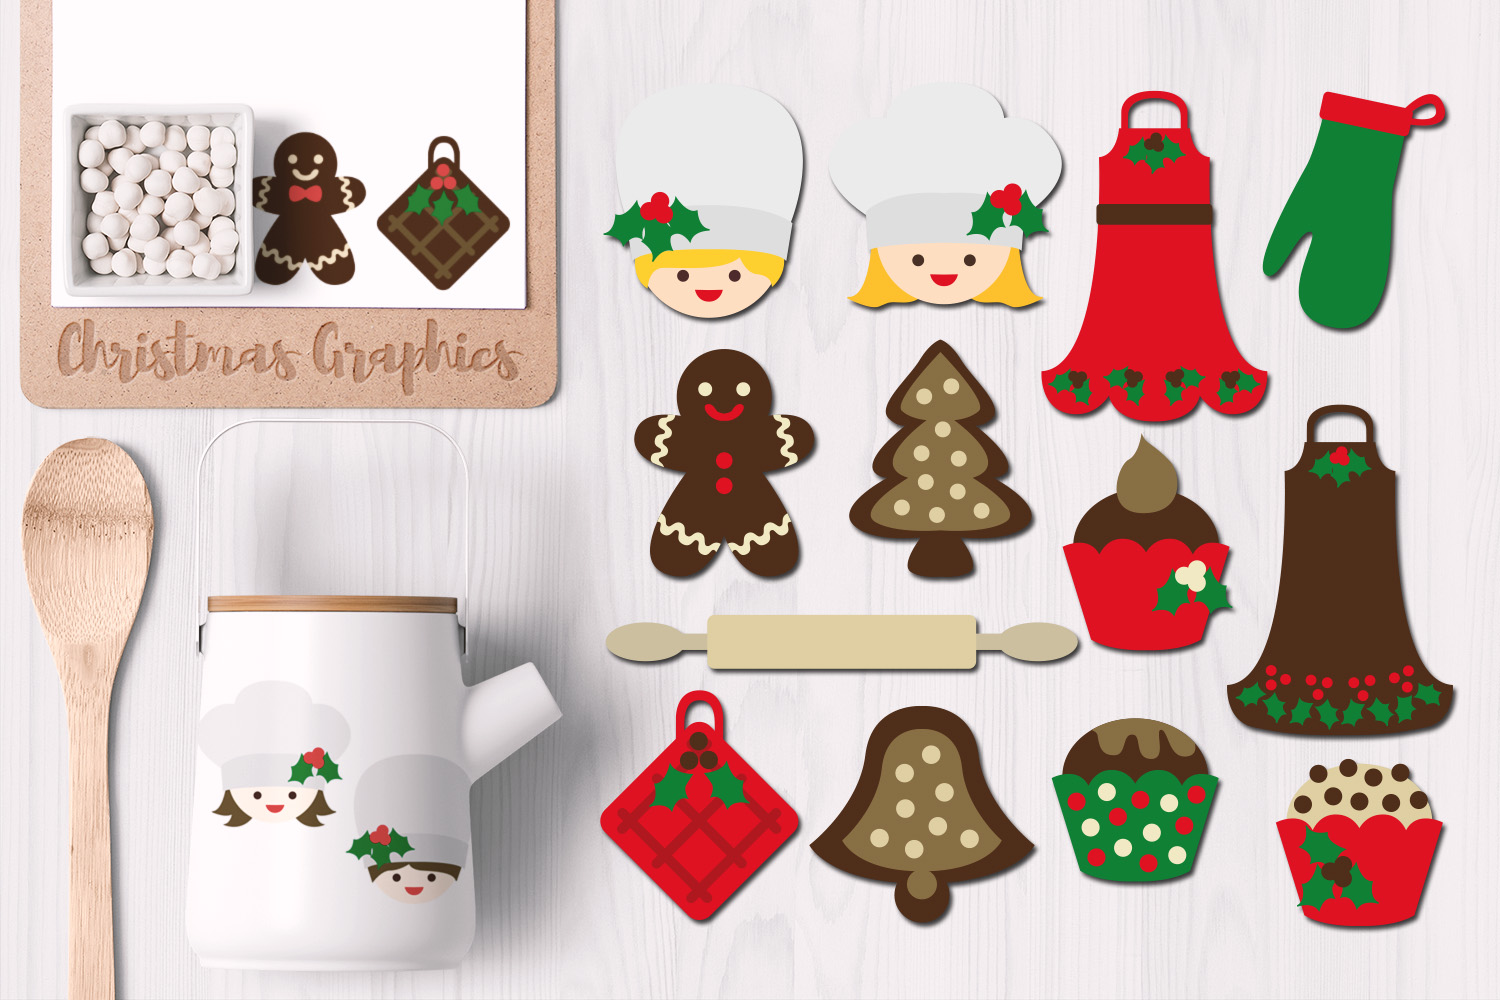 Download Free Christmas Baking Graphic By Revidevi Creative Fabrica for Cricut Explore, Silhouette and other cutting machines.